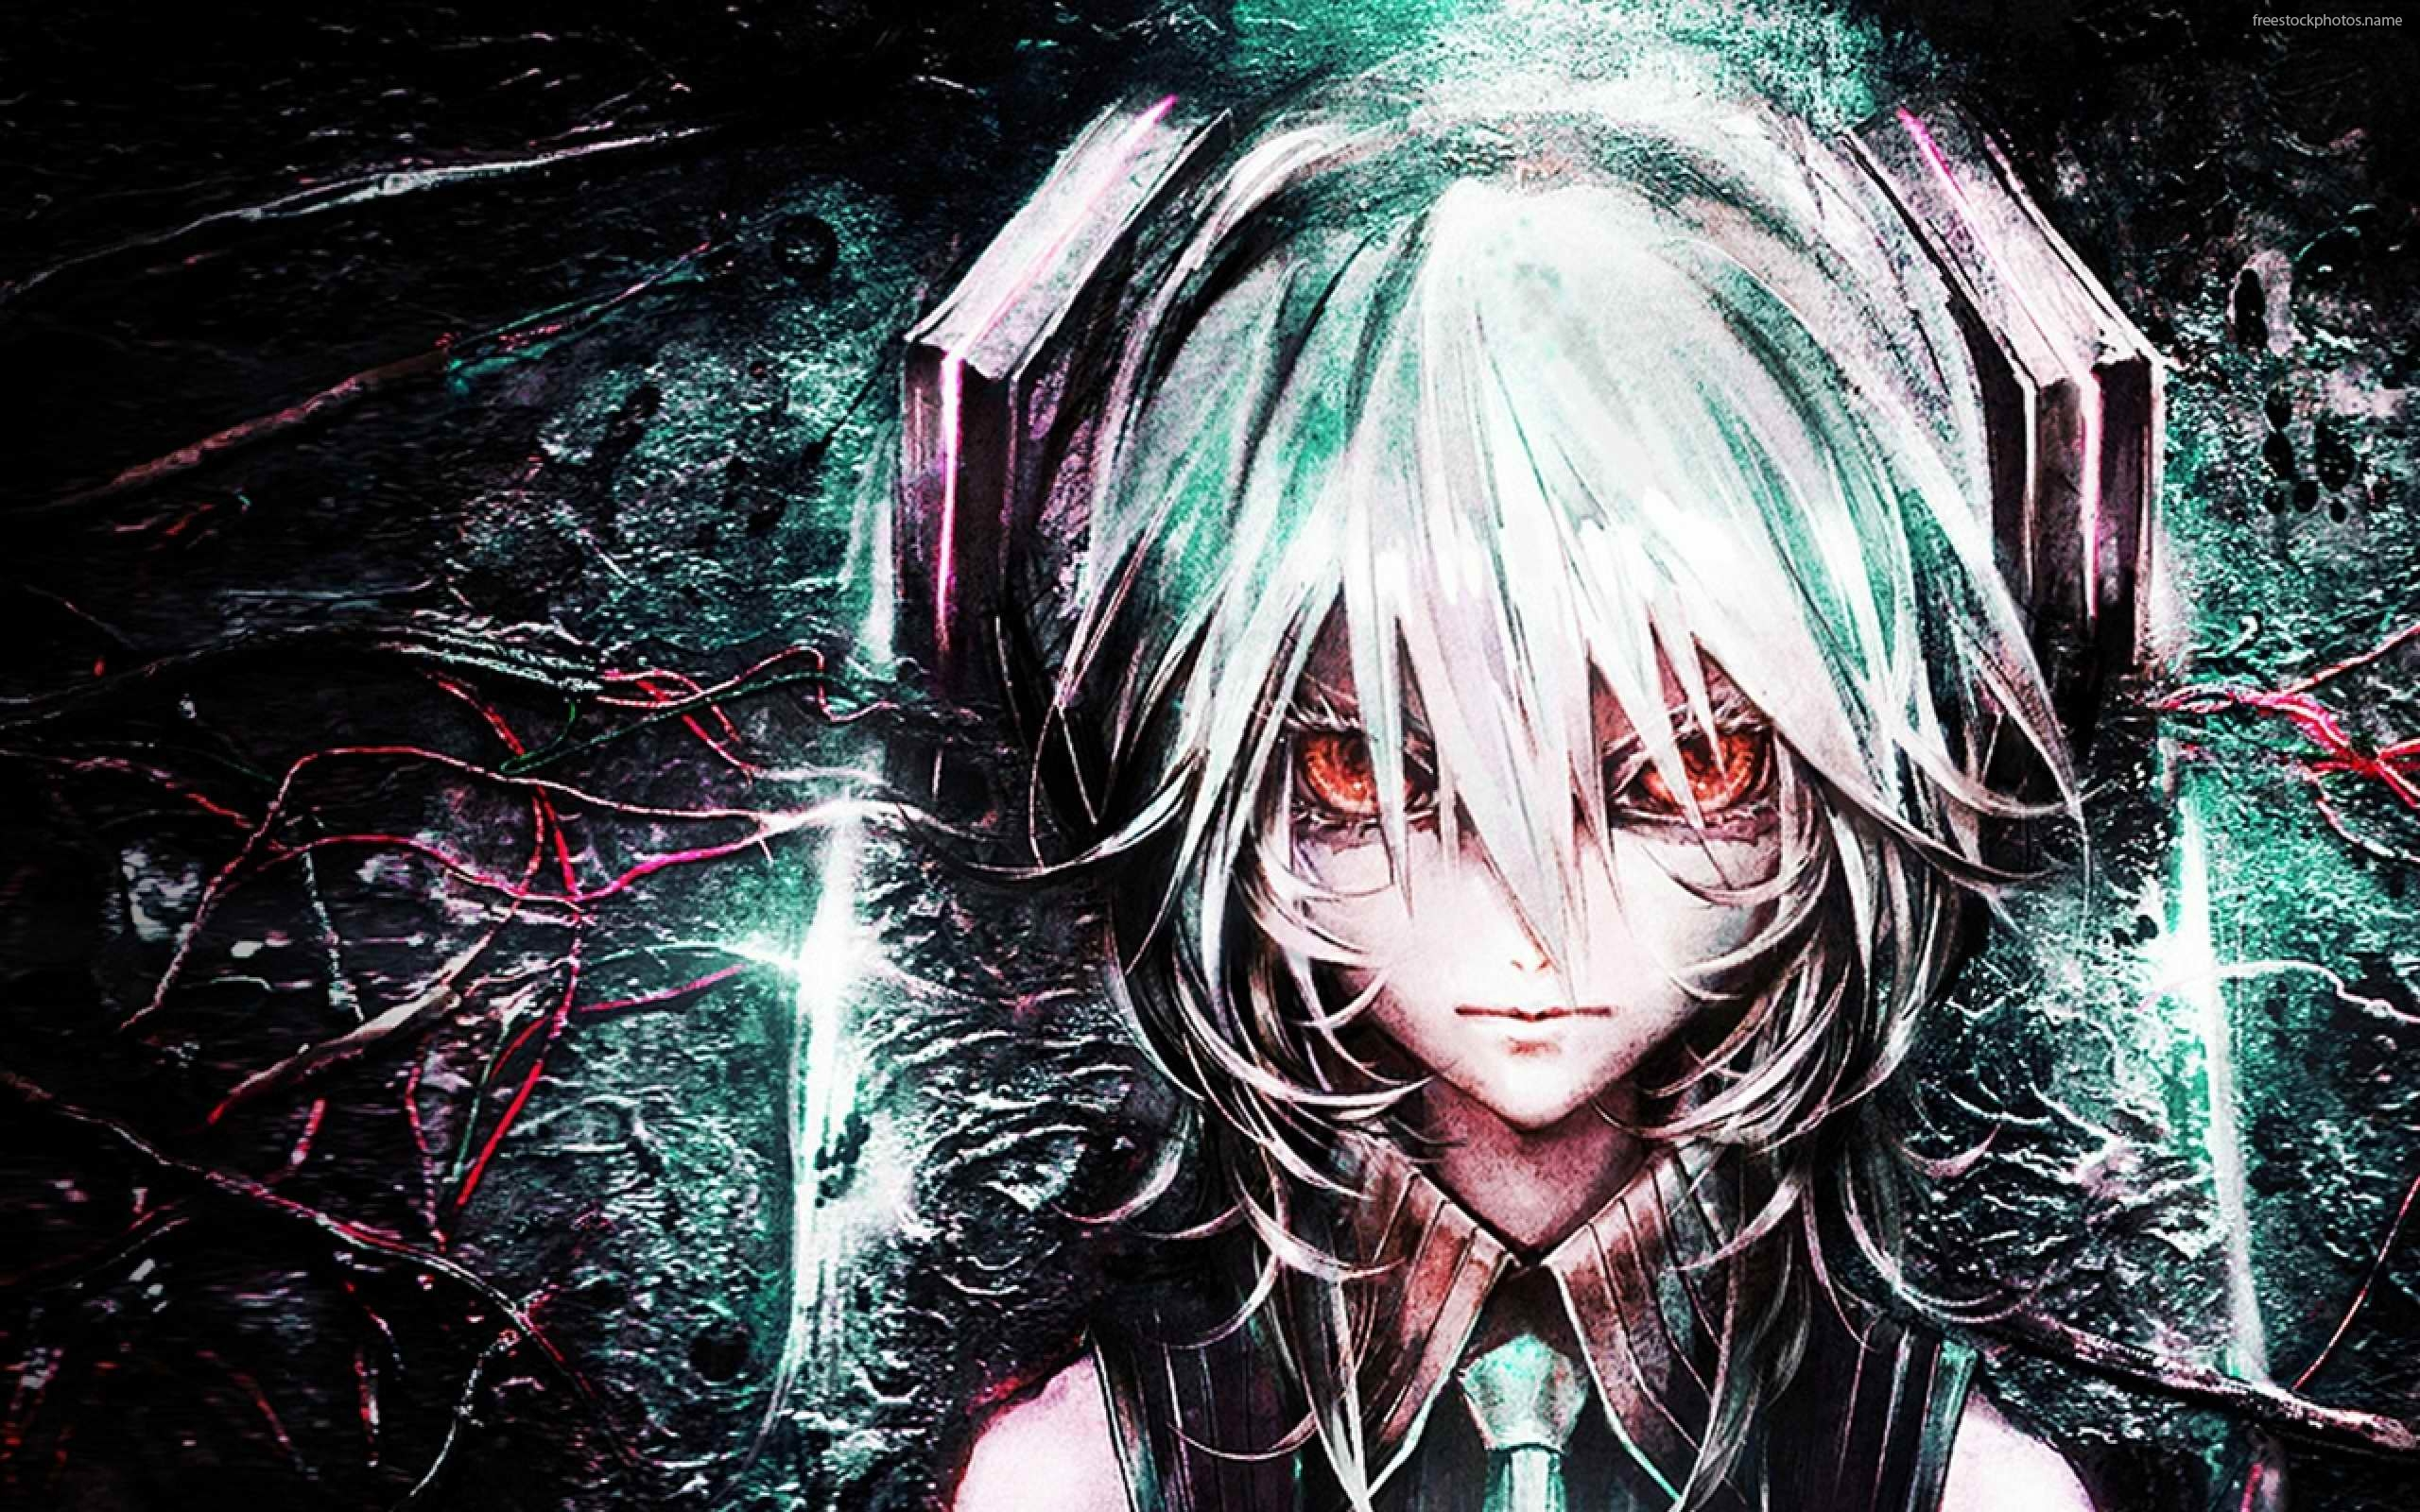 Download Stock Photos of cool anime drawing for background 2560x1600